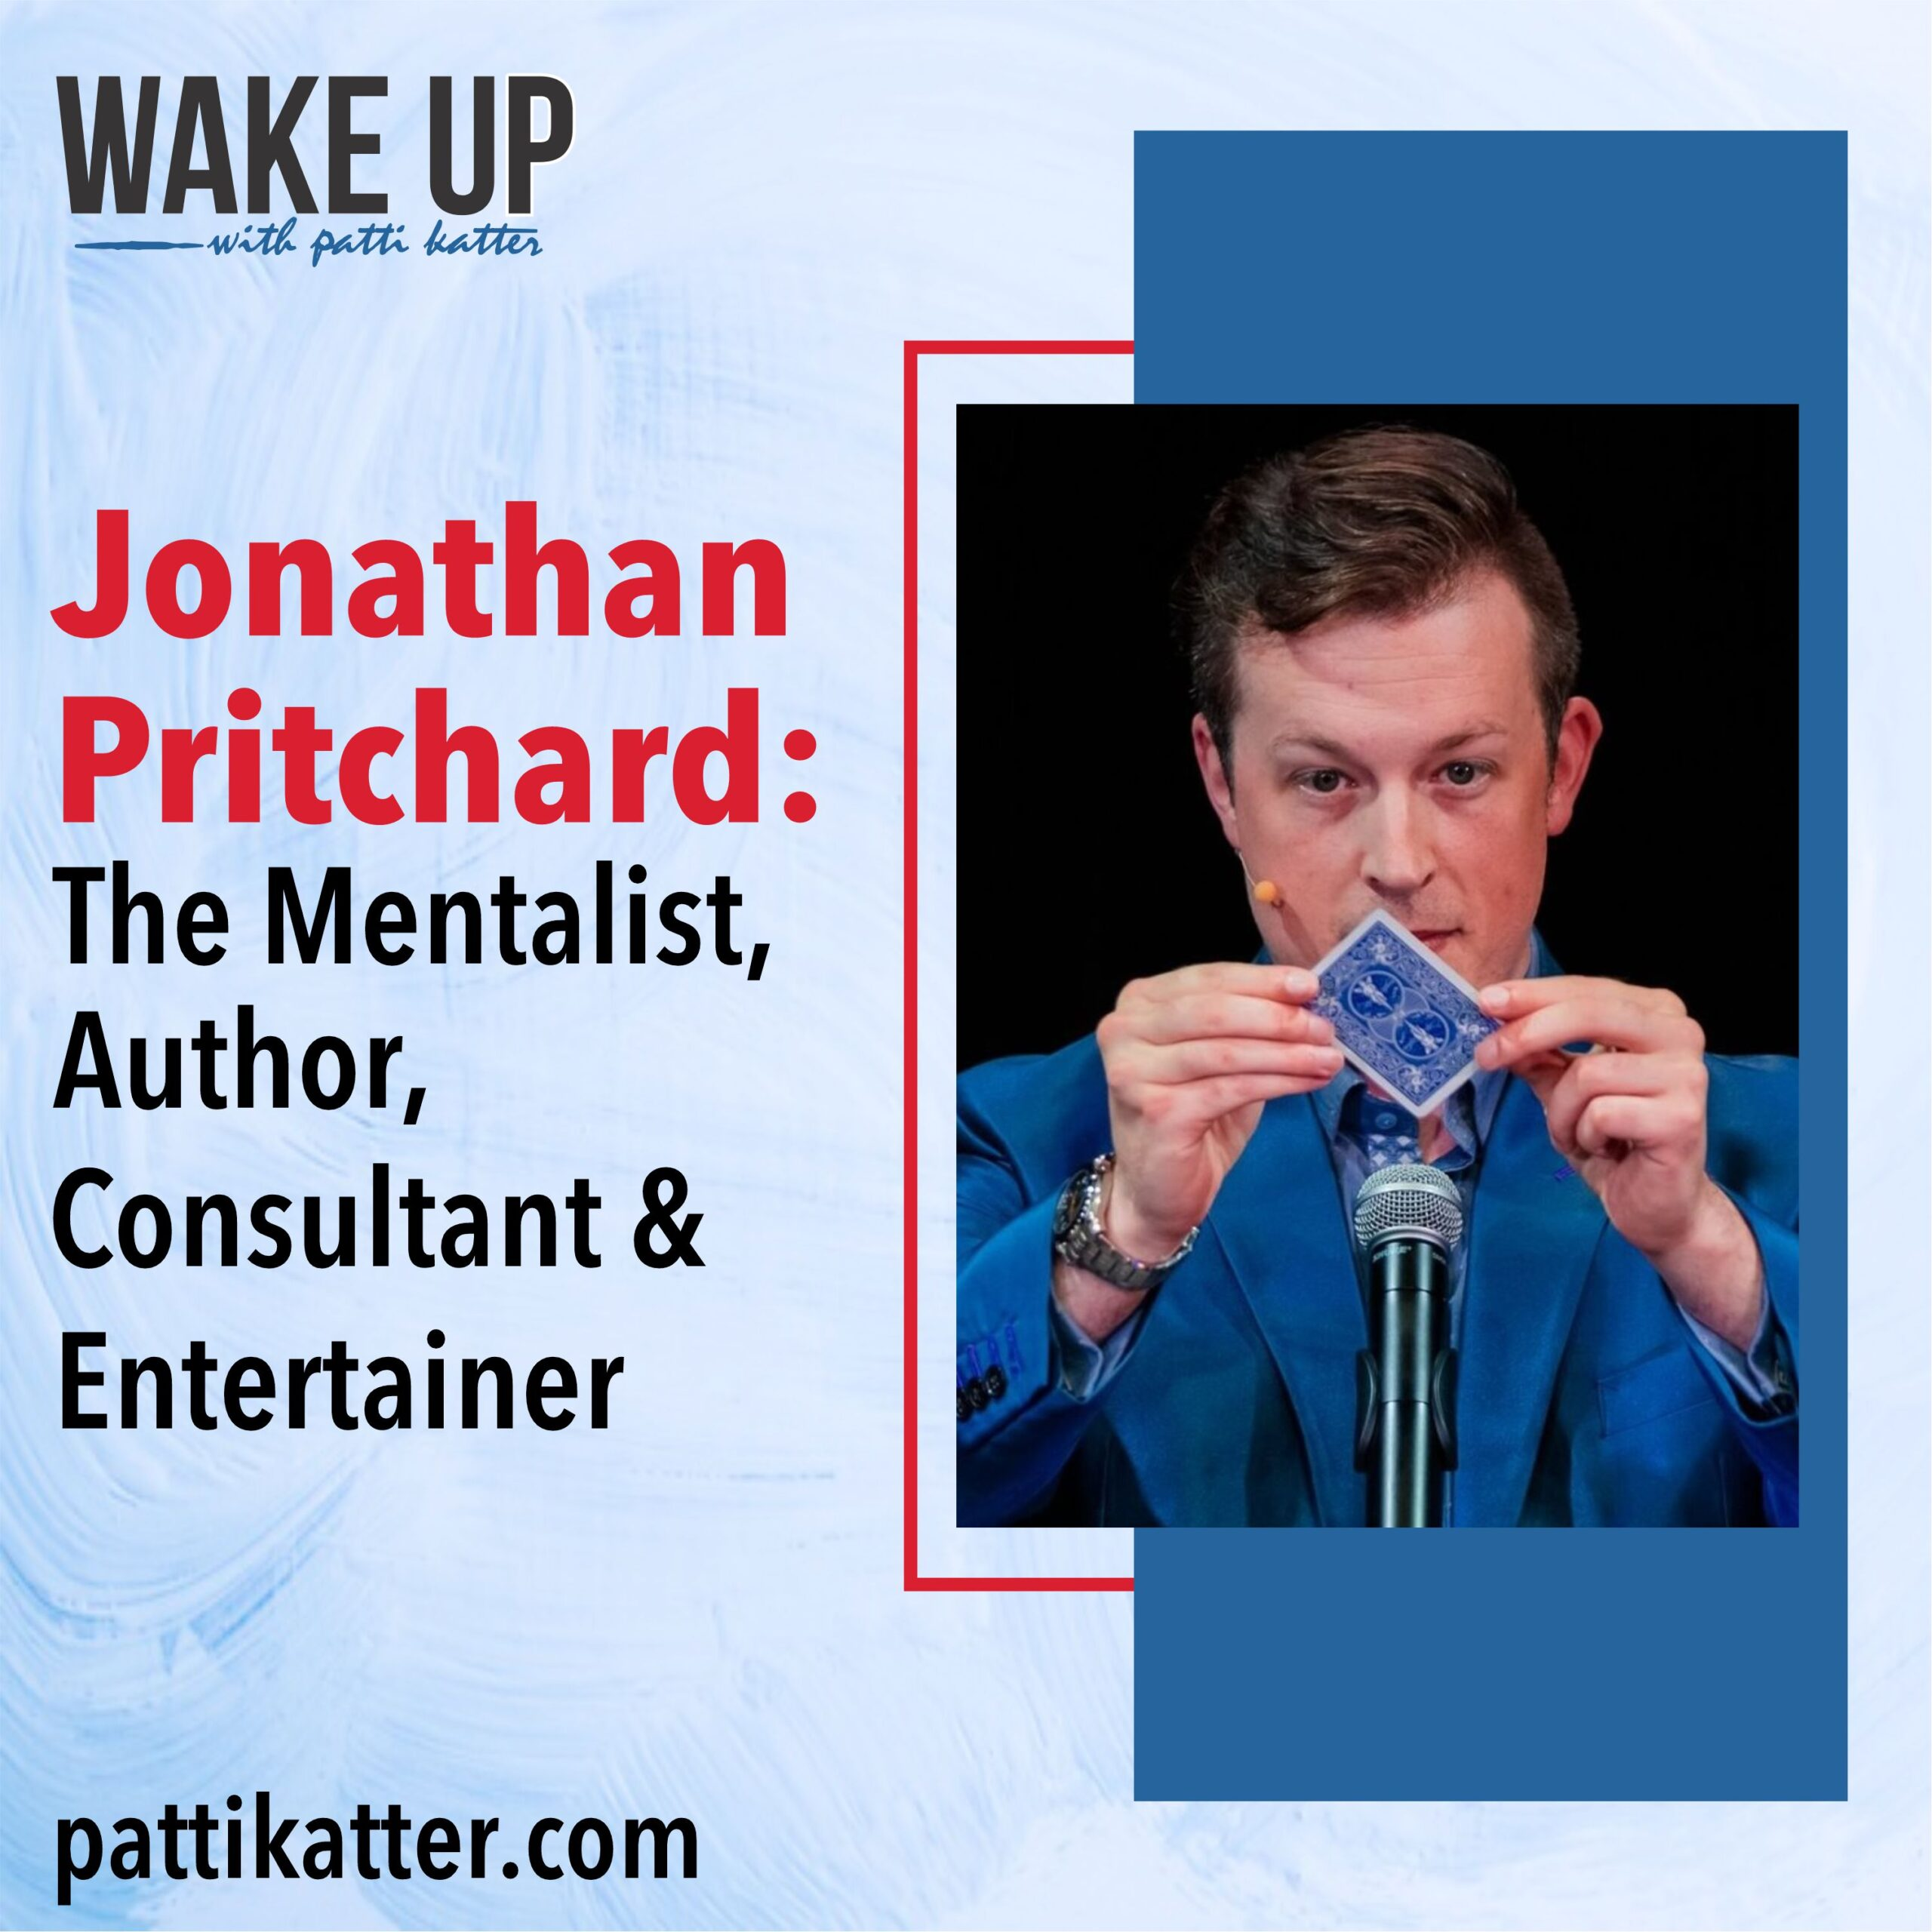 Jonathan Pritchard: The Mentalist, Author, Consultant & Entertainer